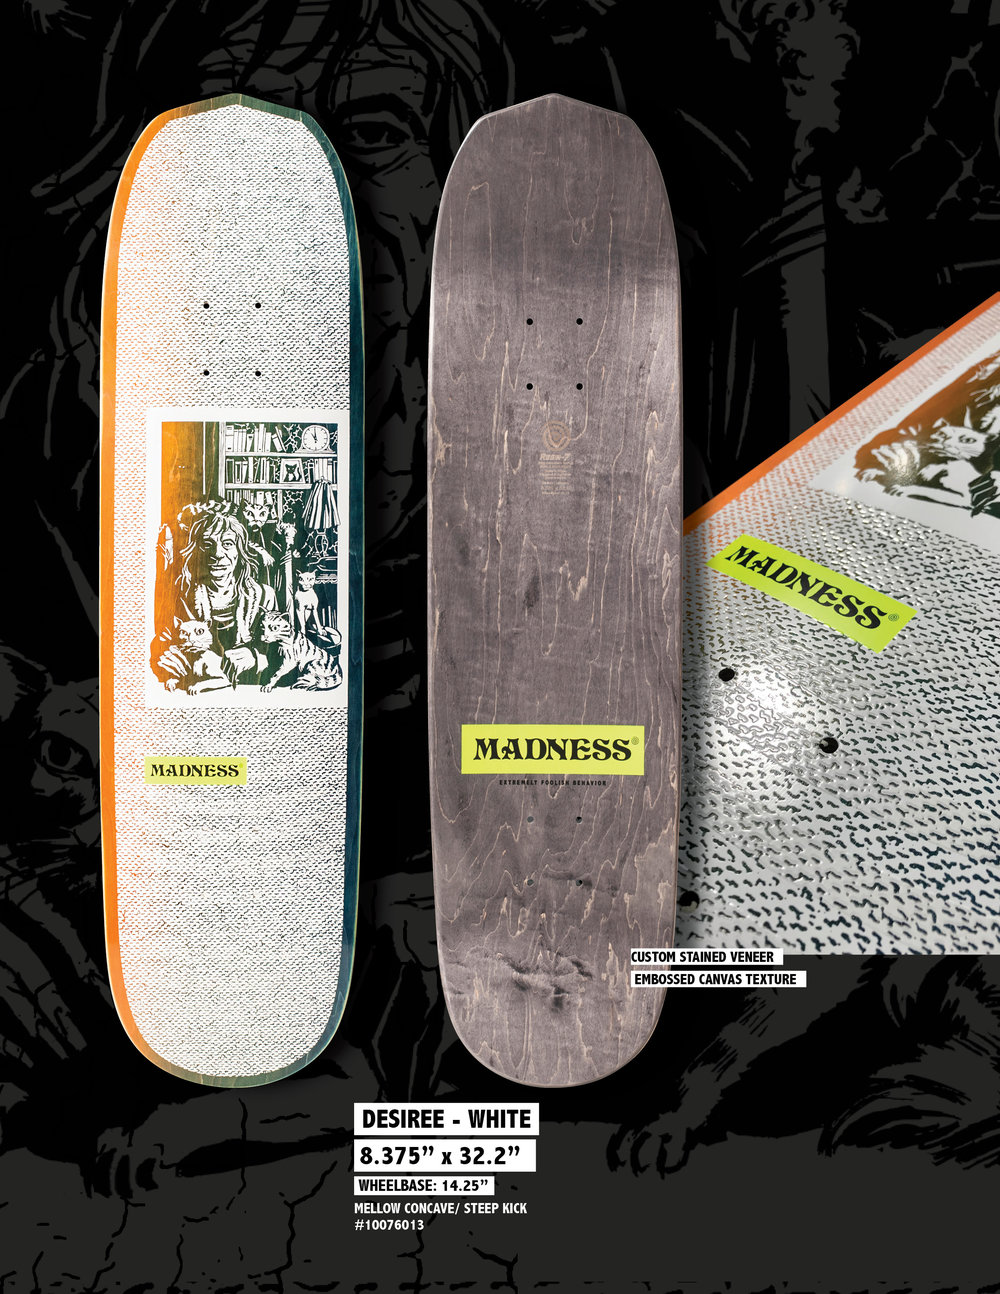 Madness_Spring_1916_Desiree_Skateboard_Deck.jpg